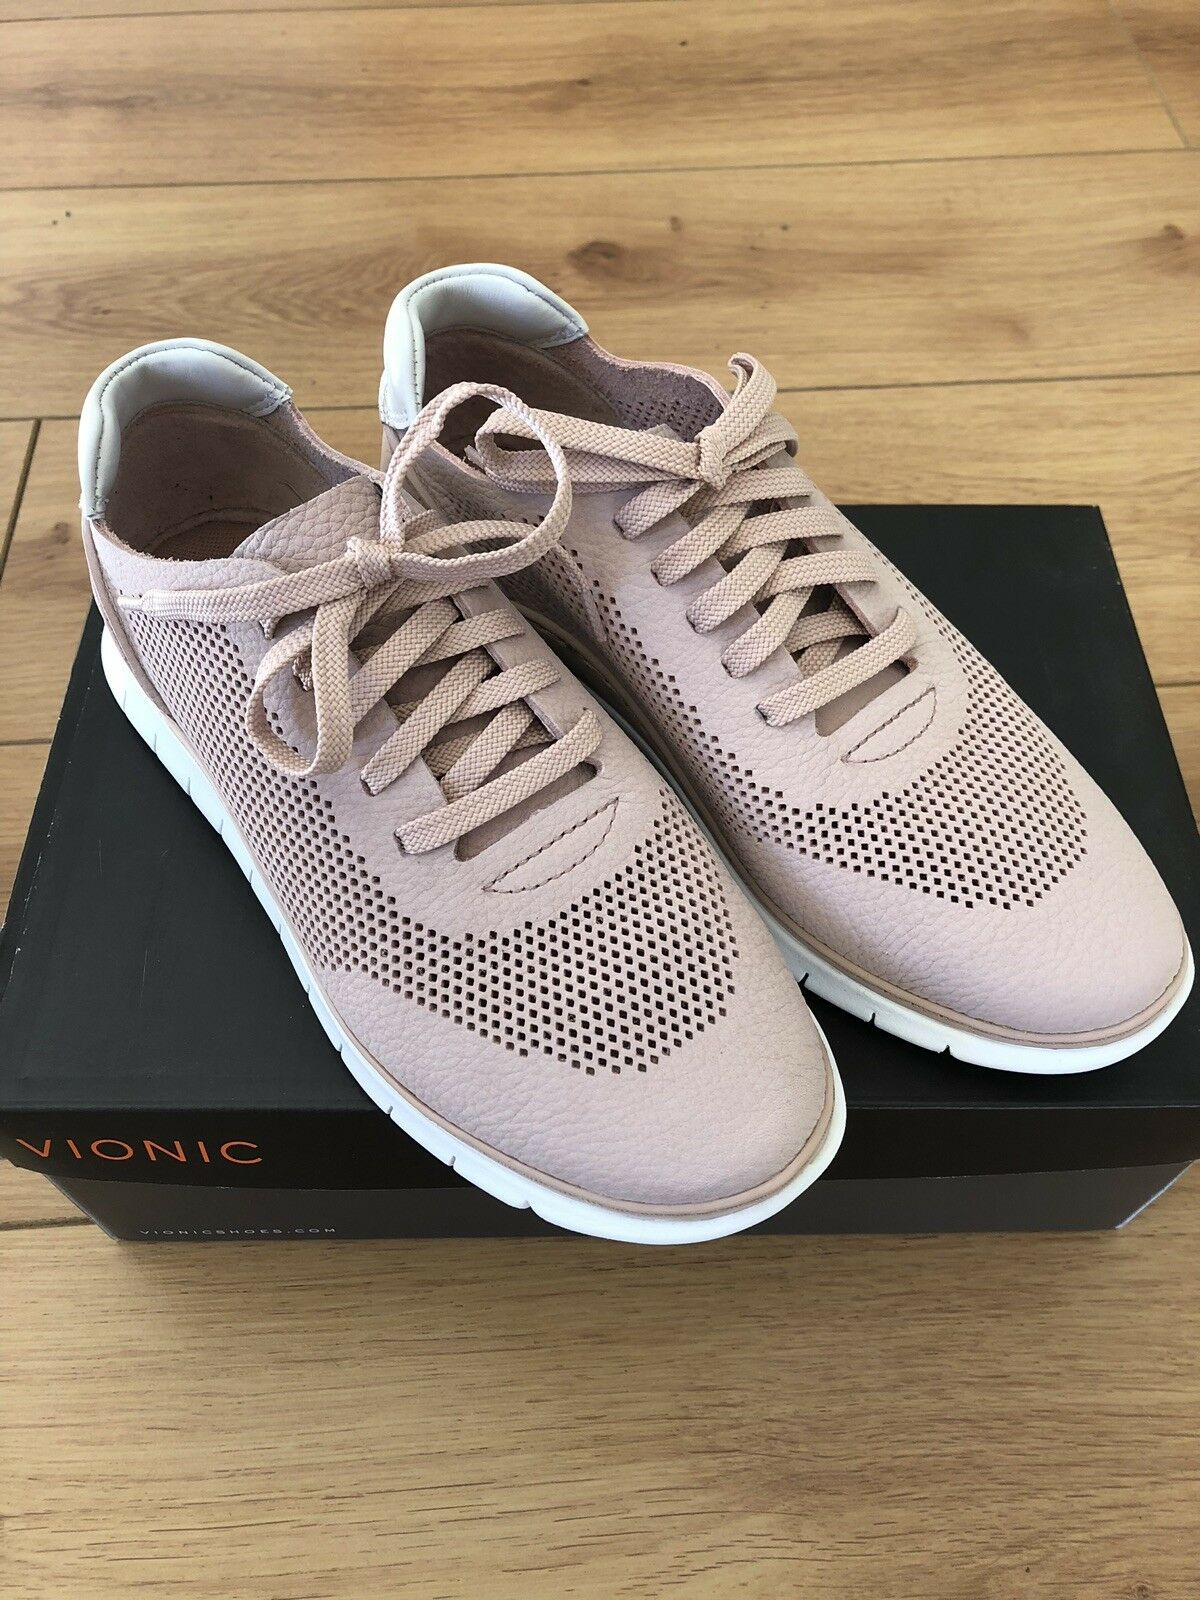 BRAND NEW VIONIC JOEY ladies trainer in dusky rose super soft leather Taille 4 37